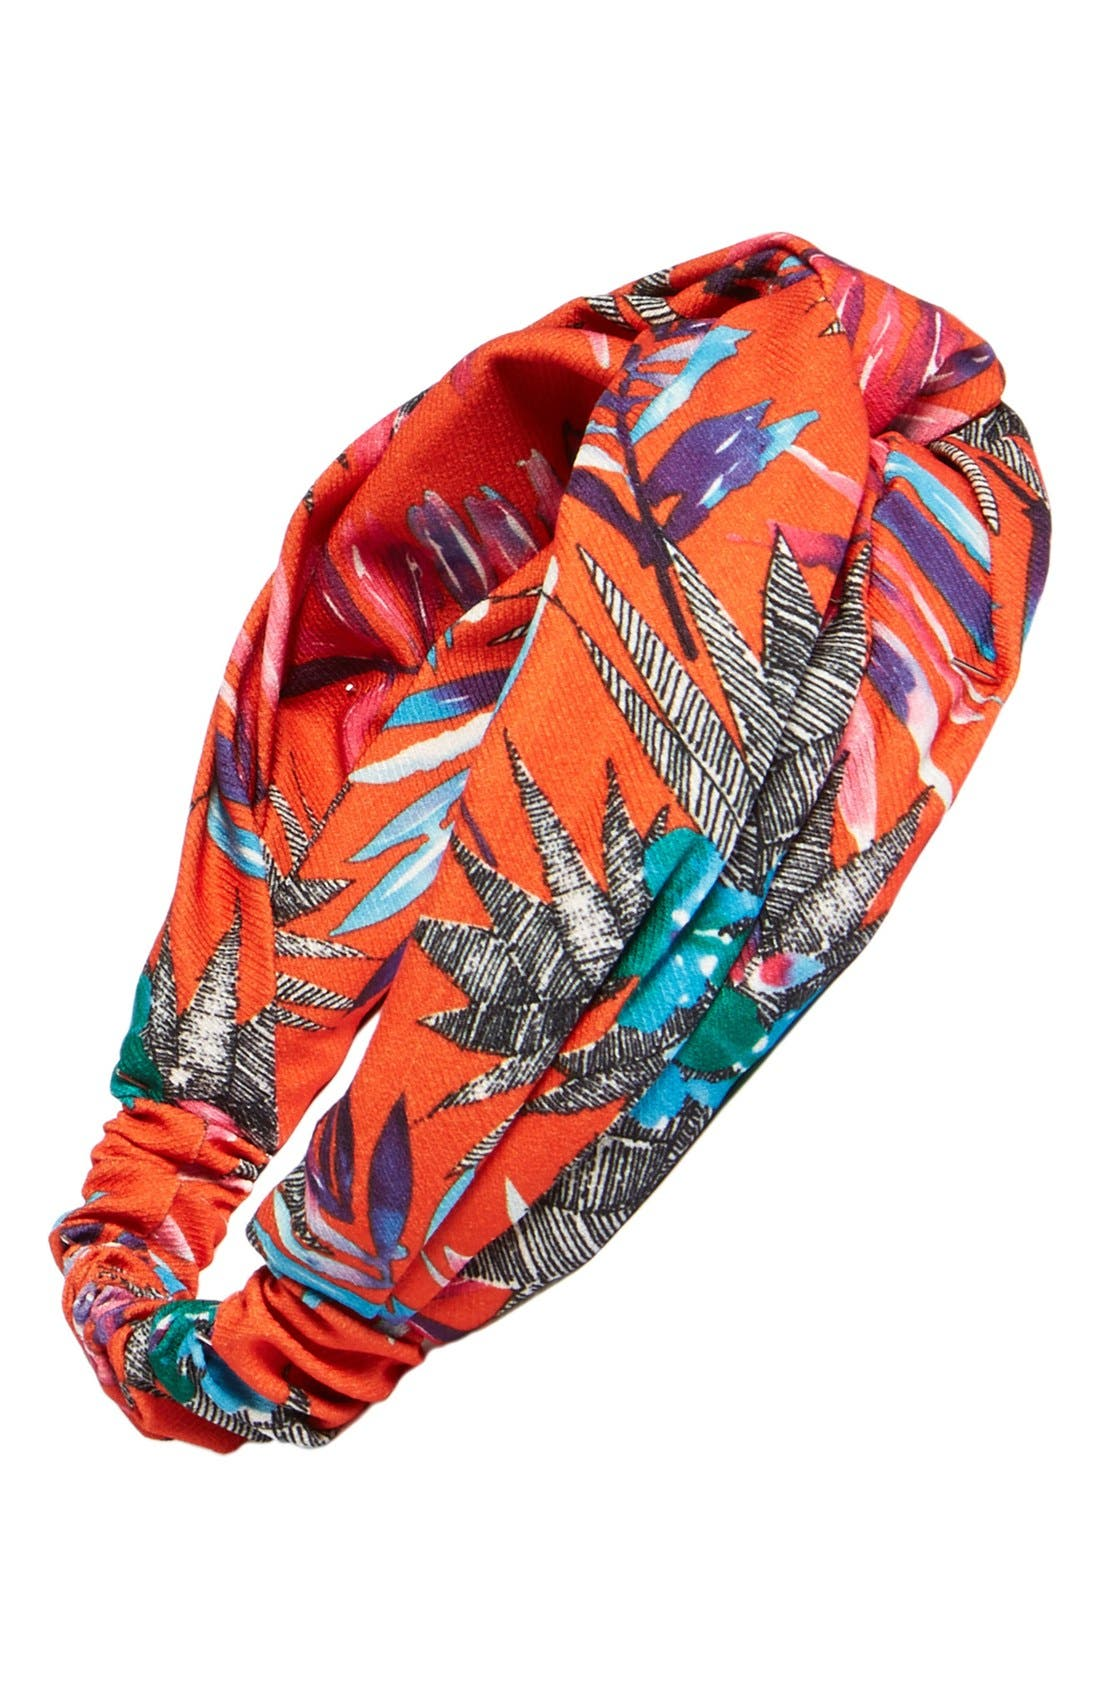 Main Image - Eugenia Kim Tropical Print Turban Headband